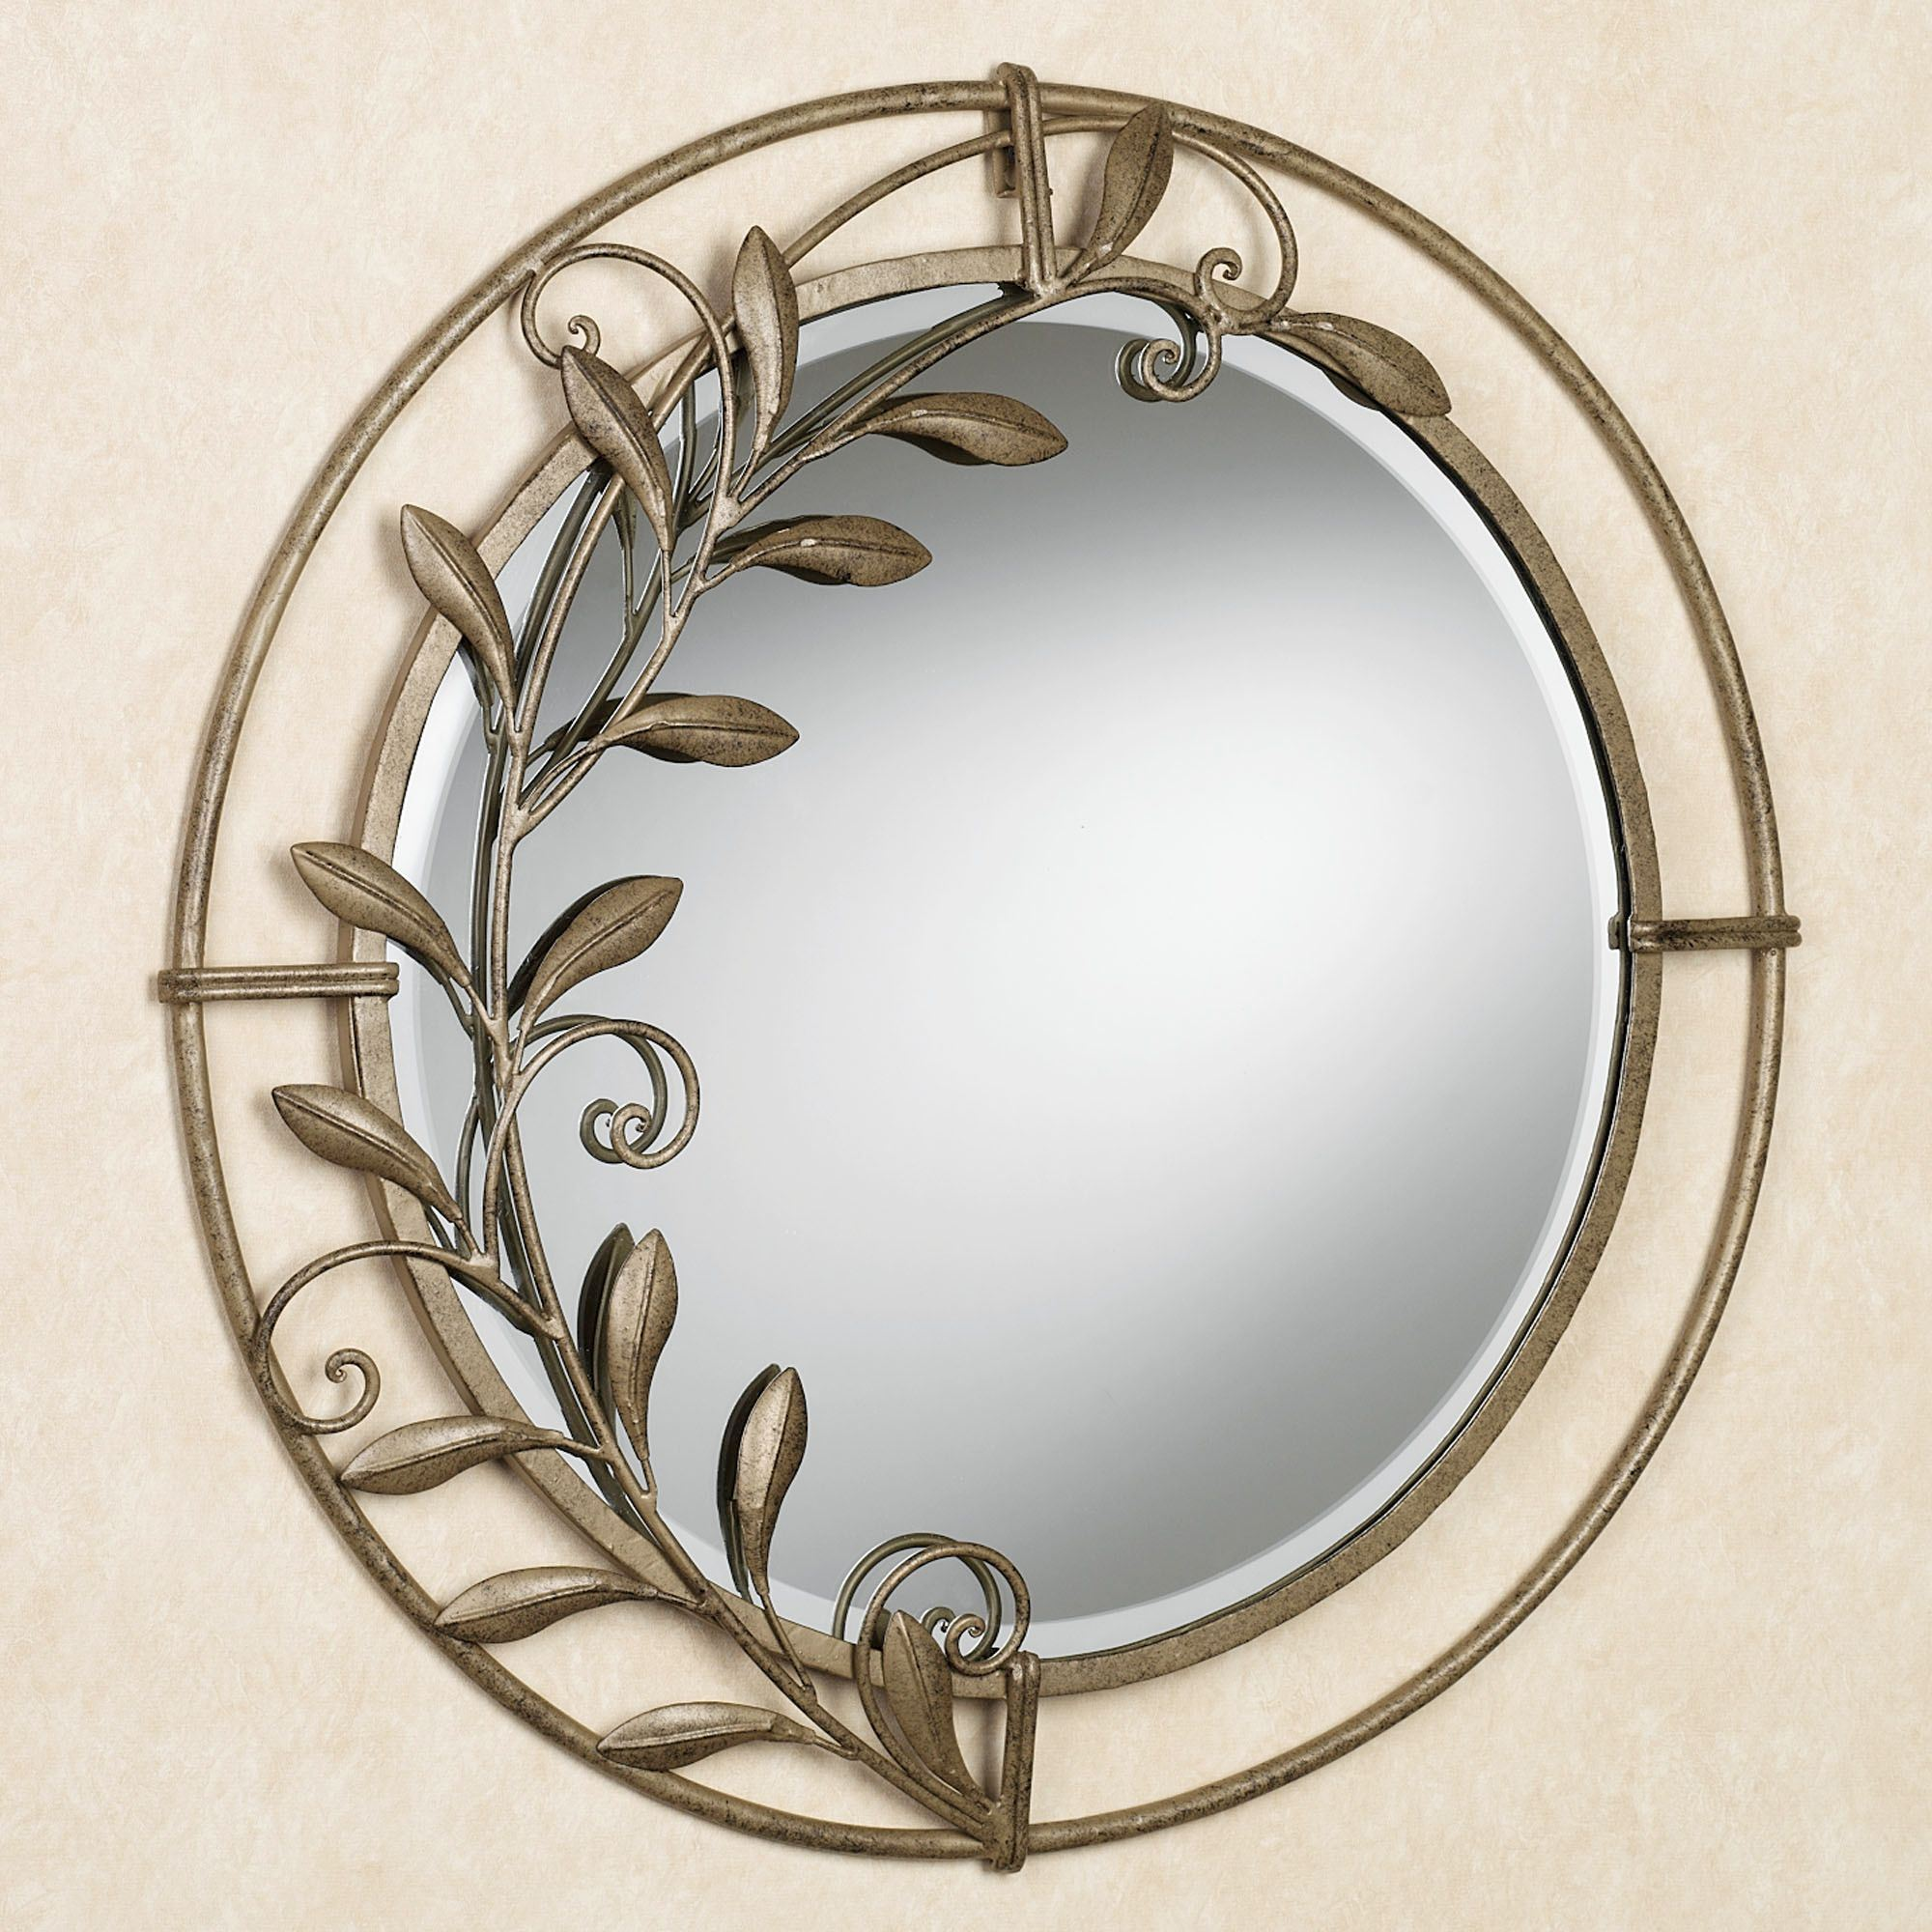 Well-liked Galeazzo Antique Gold Round Metal Wall Mirror KU77